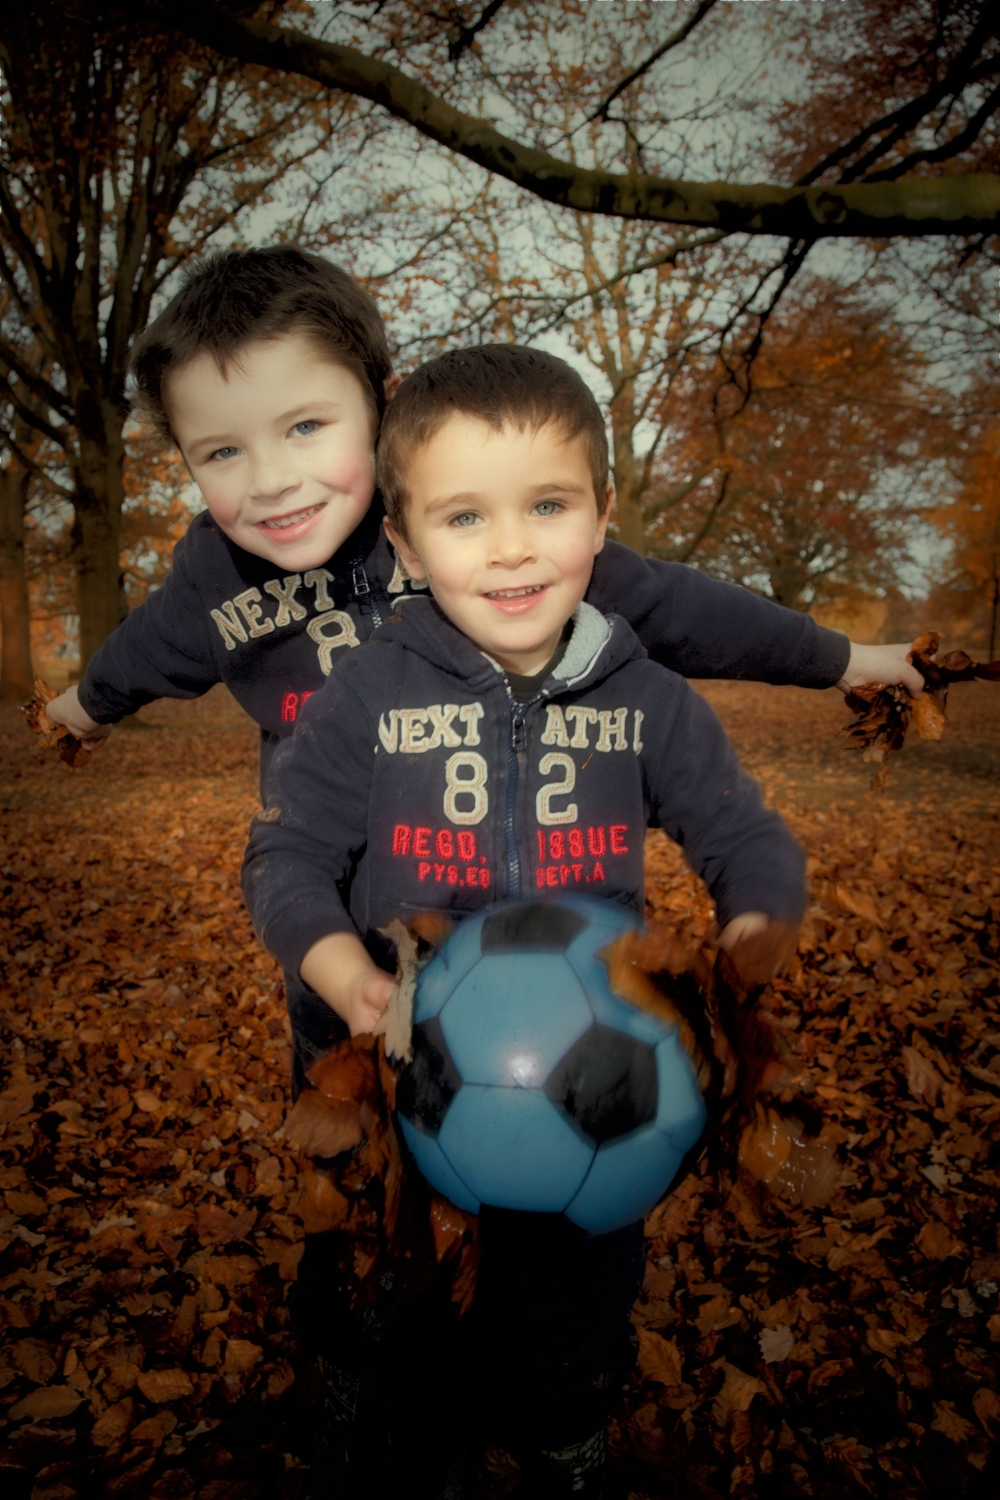 Lucria Creative, Wayne Hudson, Autumn family photography, Coventry, Warwickshire